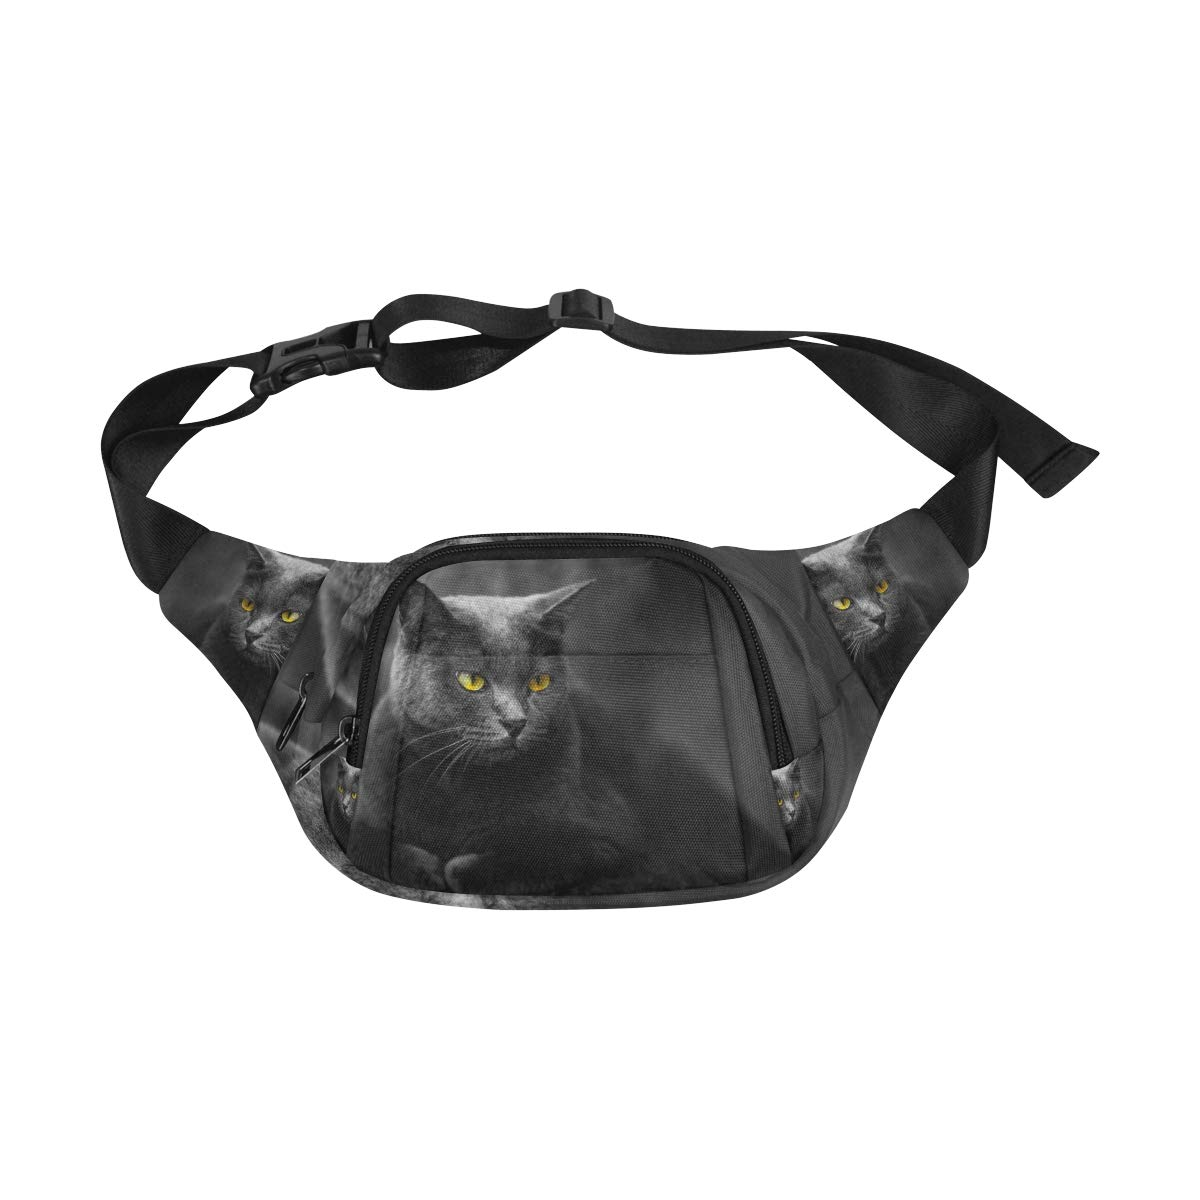 The Black Cat With Yellow Eyes Fenny Packs Waist Bags Adjustable Belt Waterproof Nylon Travel Running Sport Vacation Party For Men Women Boys Girls Kids